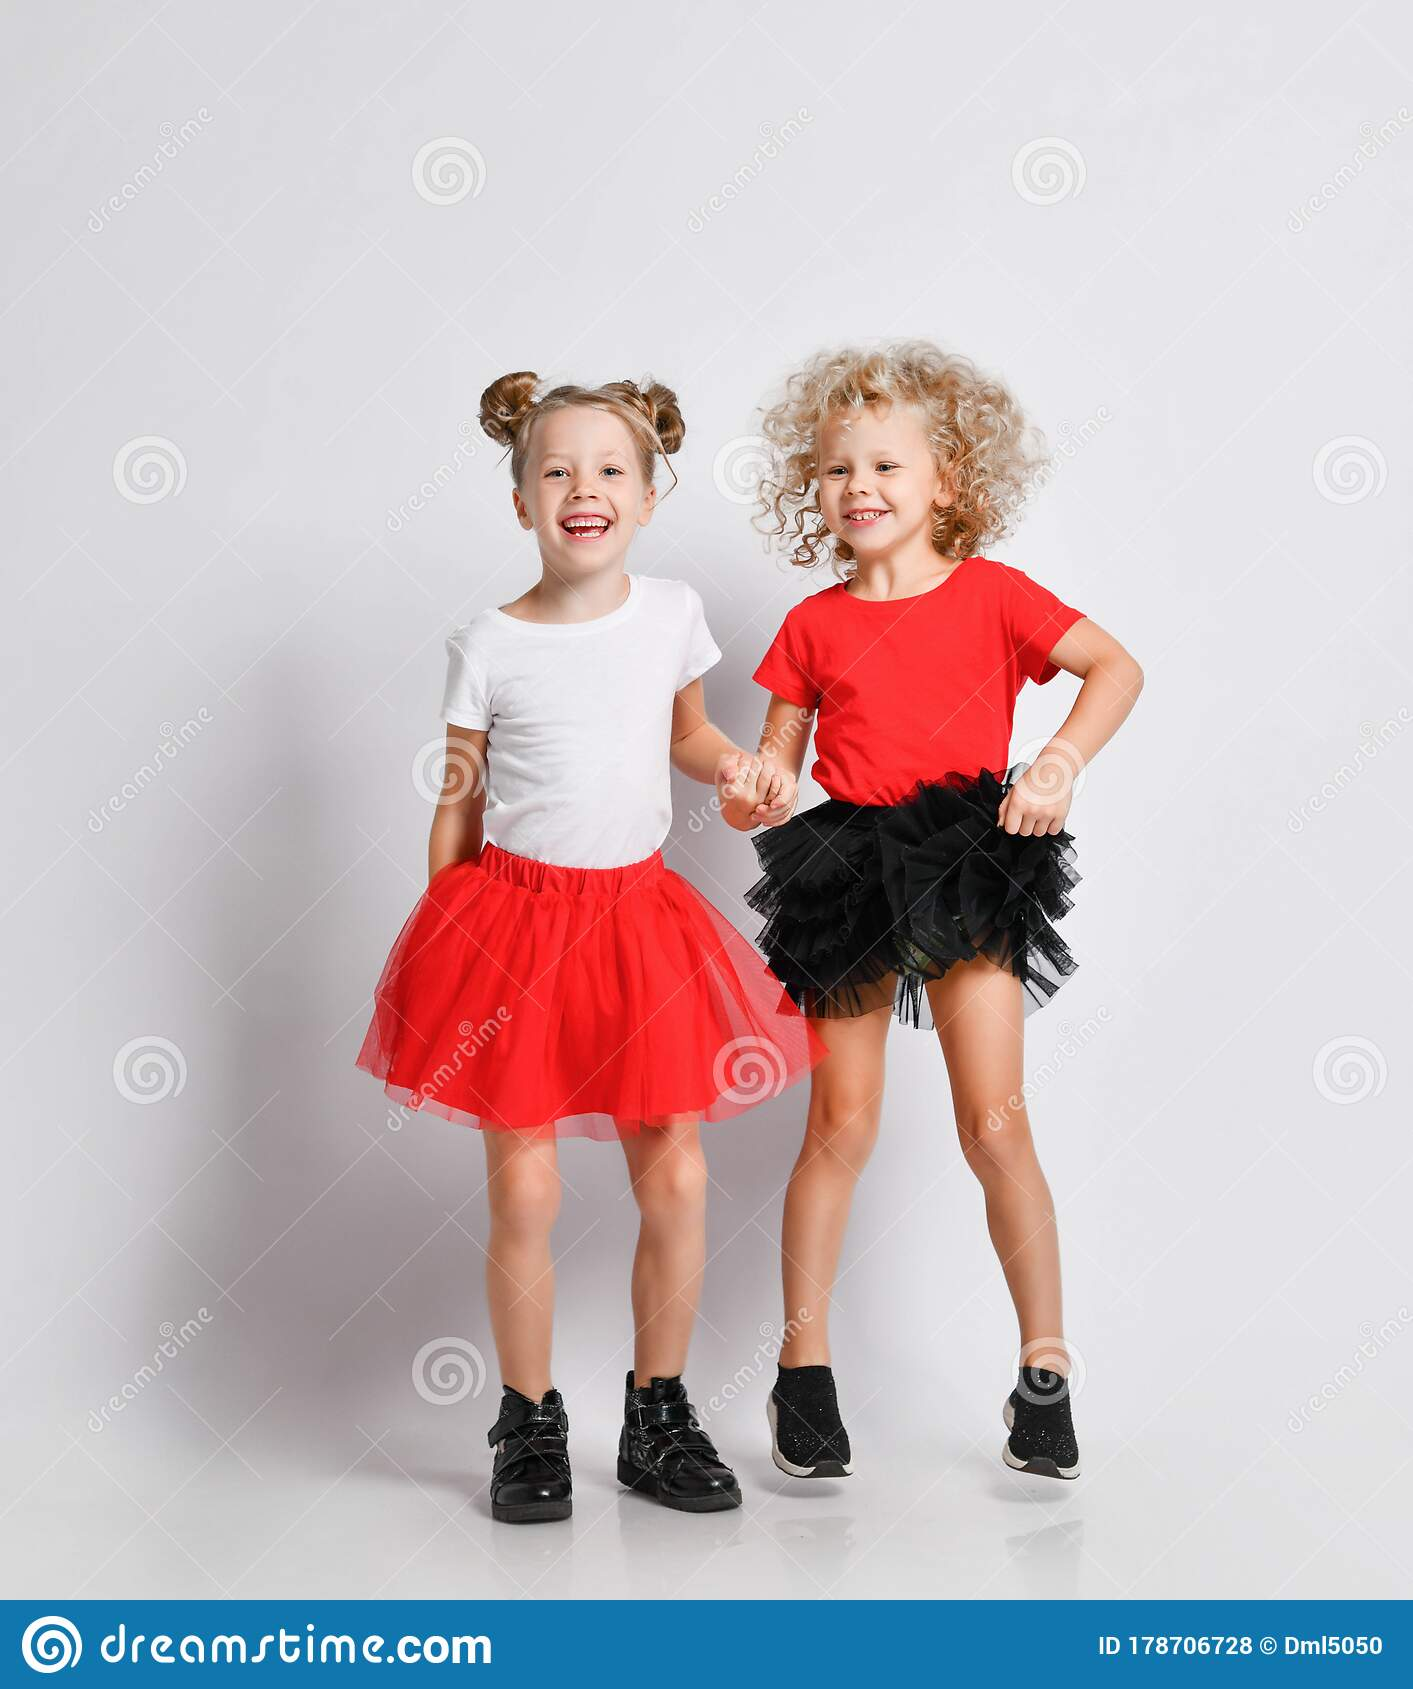 Playful Kids Girls In Skirts And T-shirts Are Jumping Playing Laughing  Screaming Having Fun Stock Photo - Image of girl, beautiful: 178706728